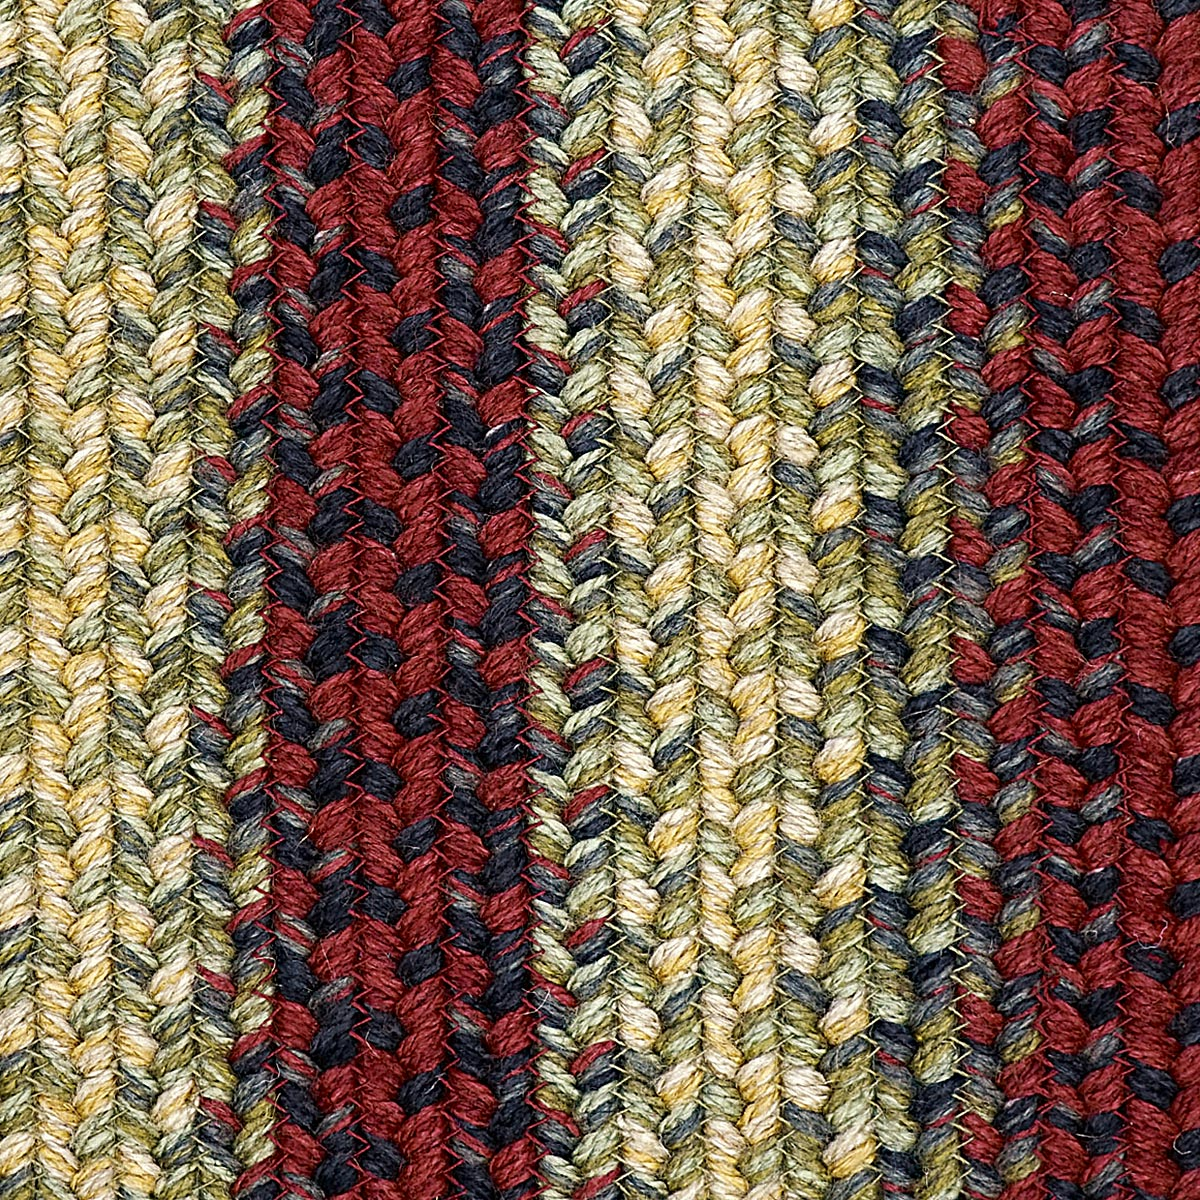 HSD Flagstaff Rectangle Ultra Wool Braided Rug Swatch LRG